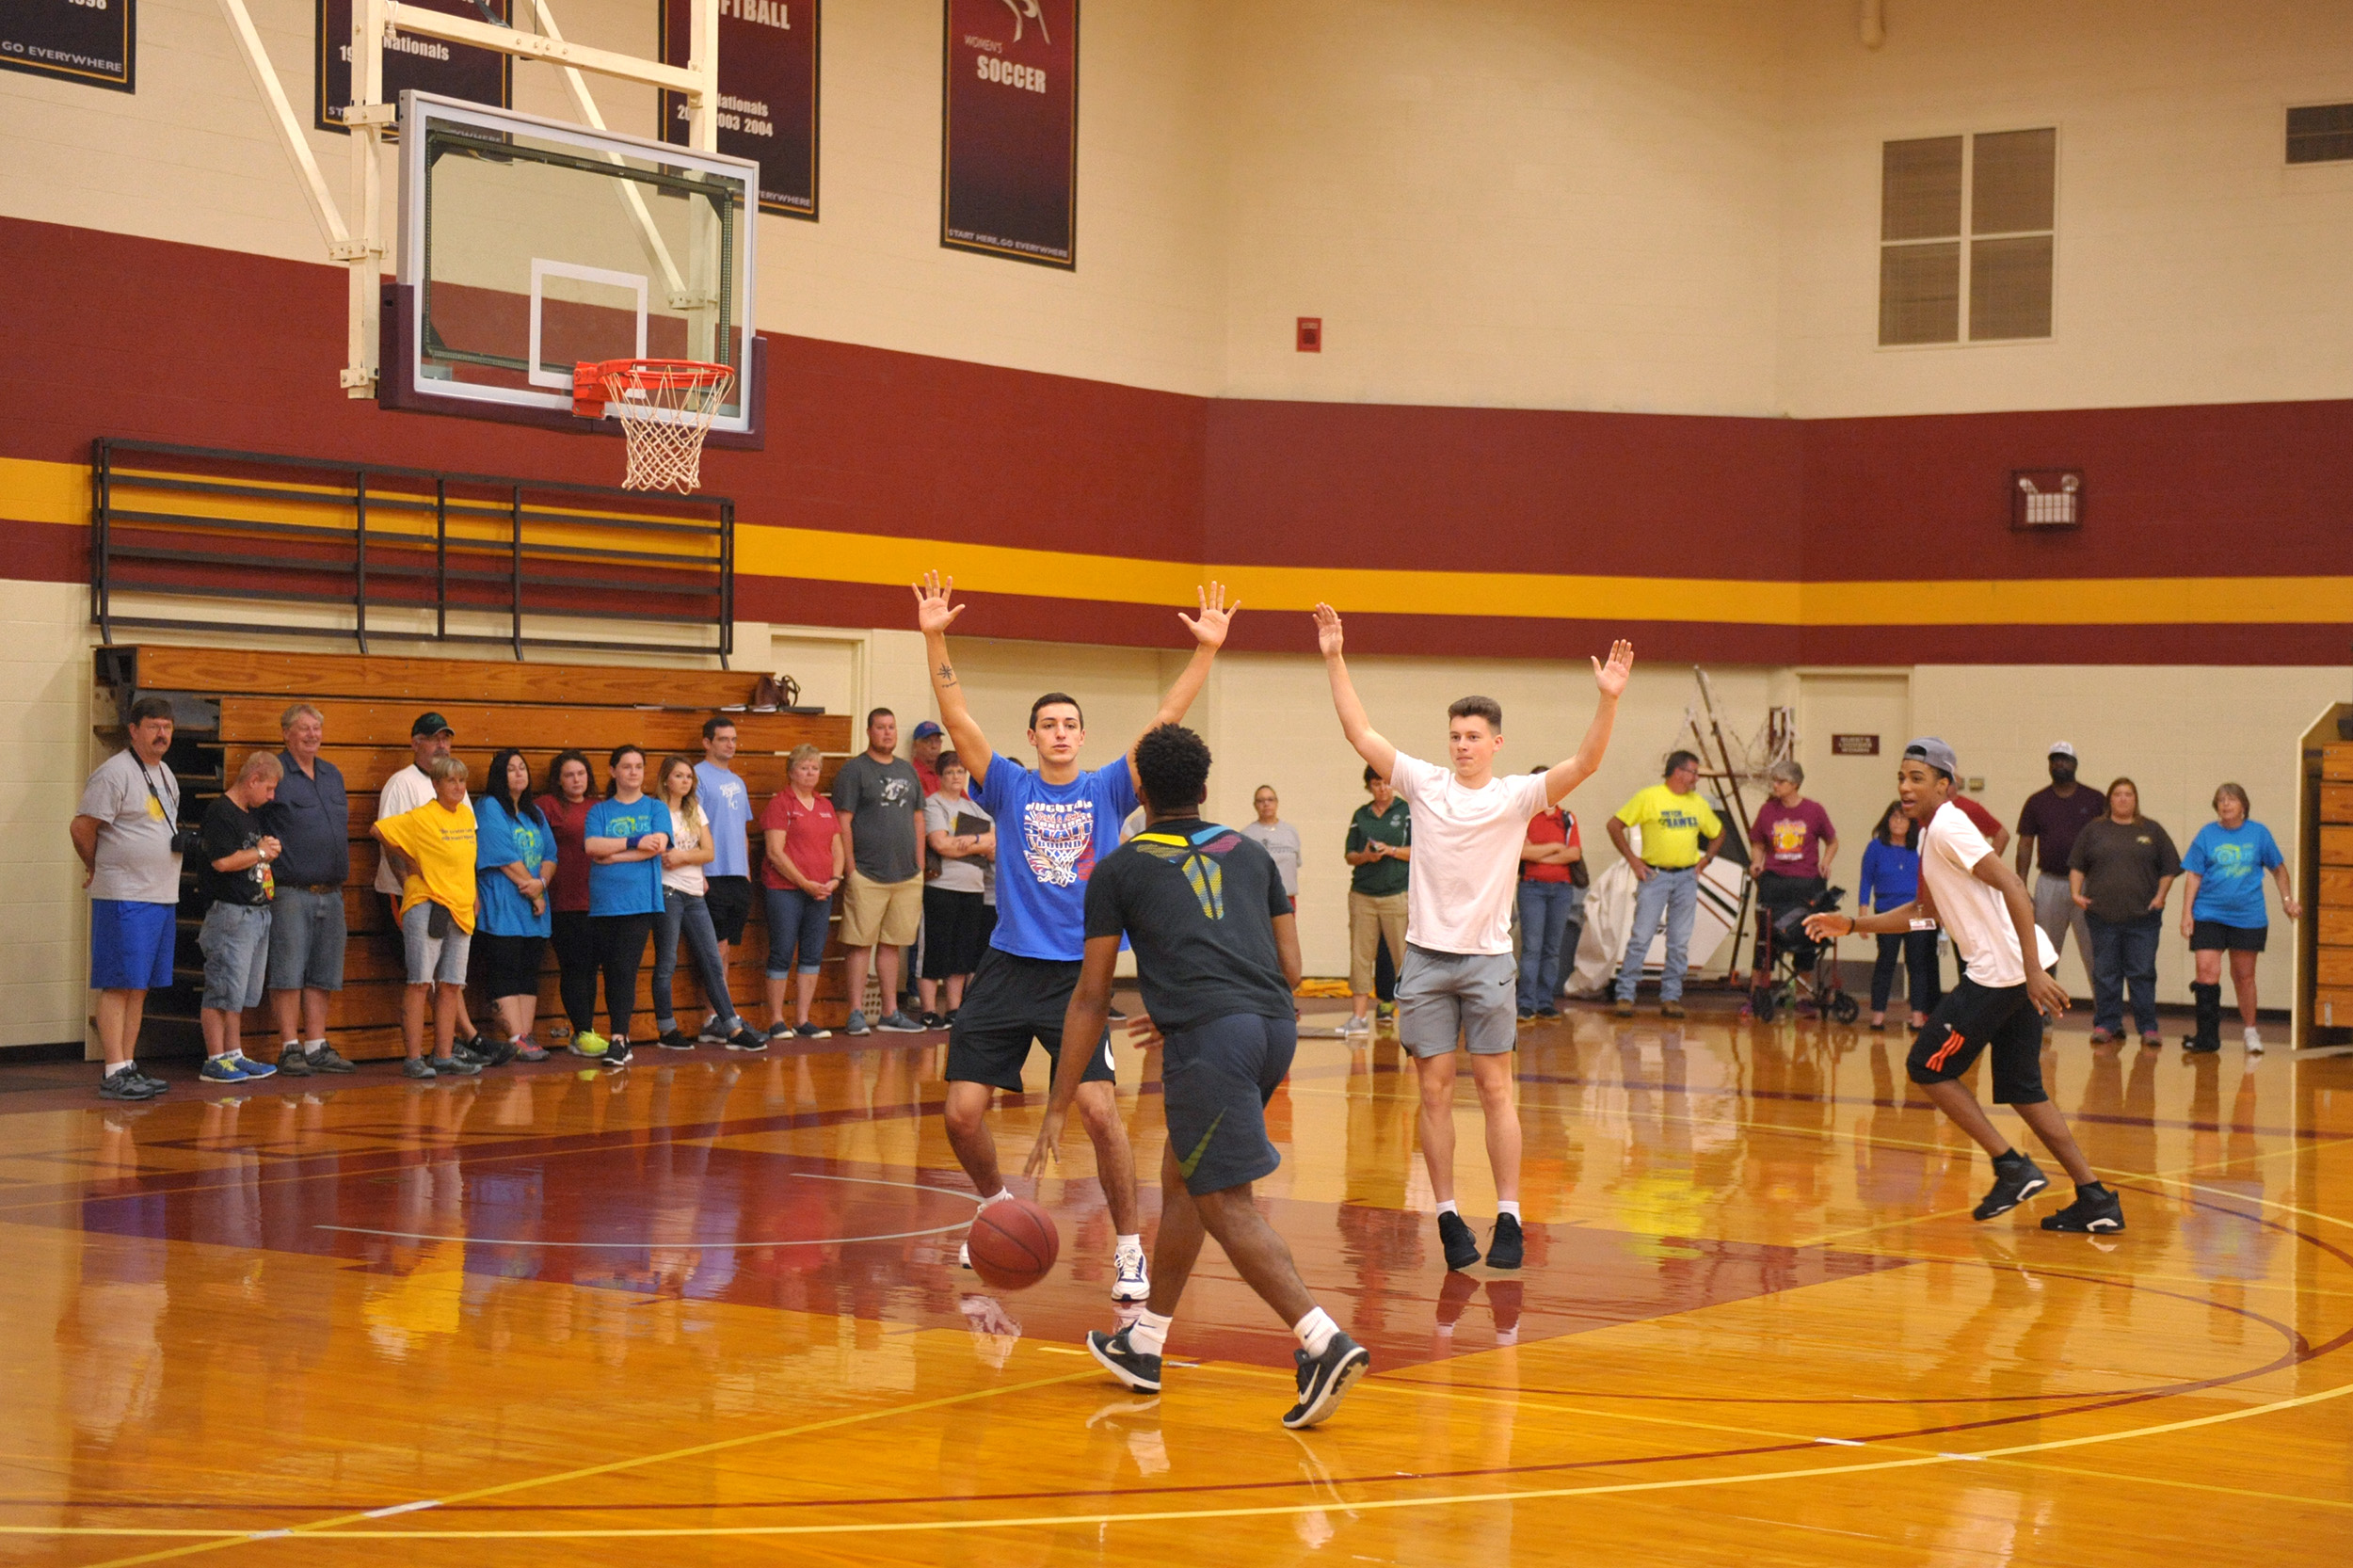 Hesston College men's basketball players demonstrate drills at a clinic for prospective Special Olympics coaches.